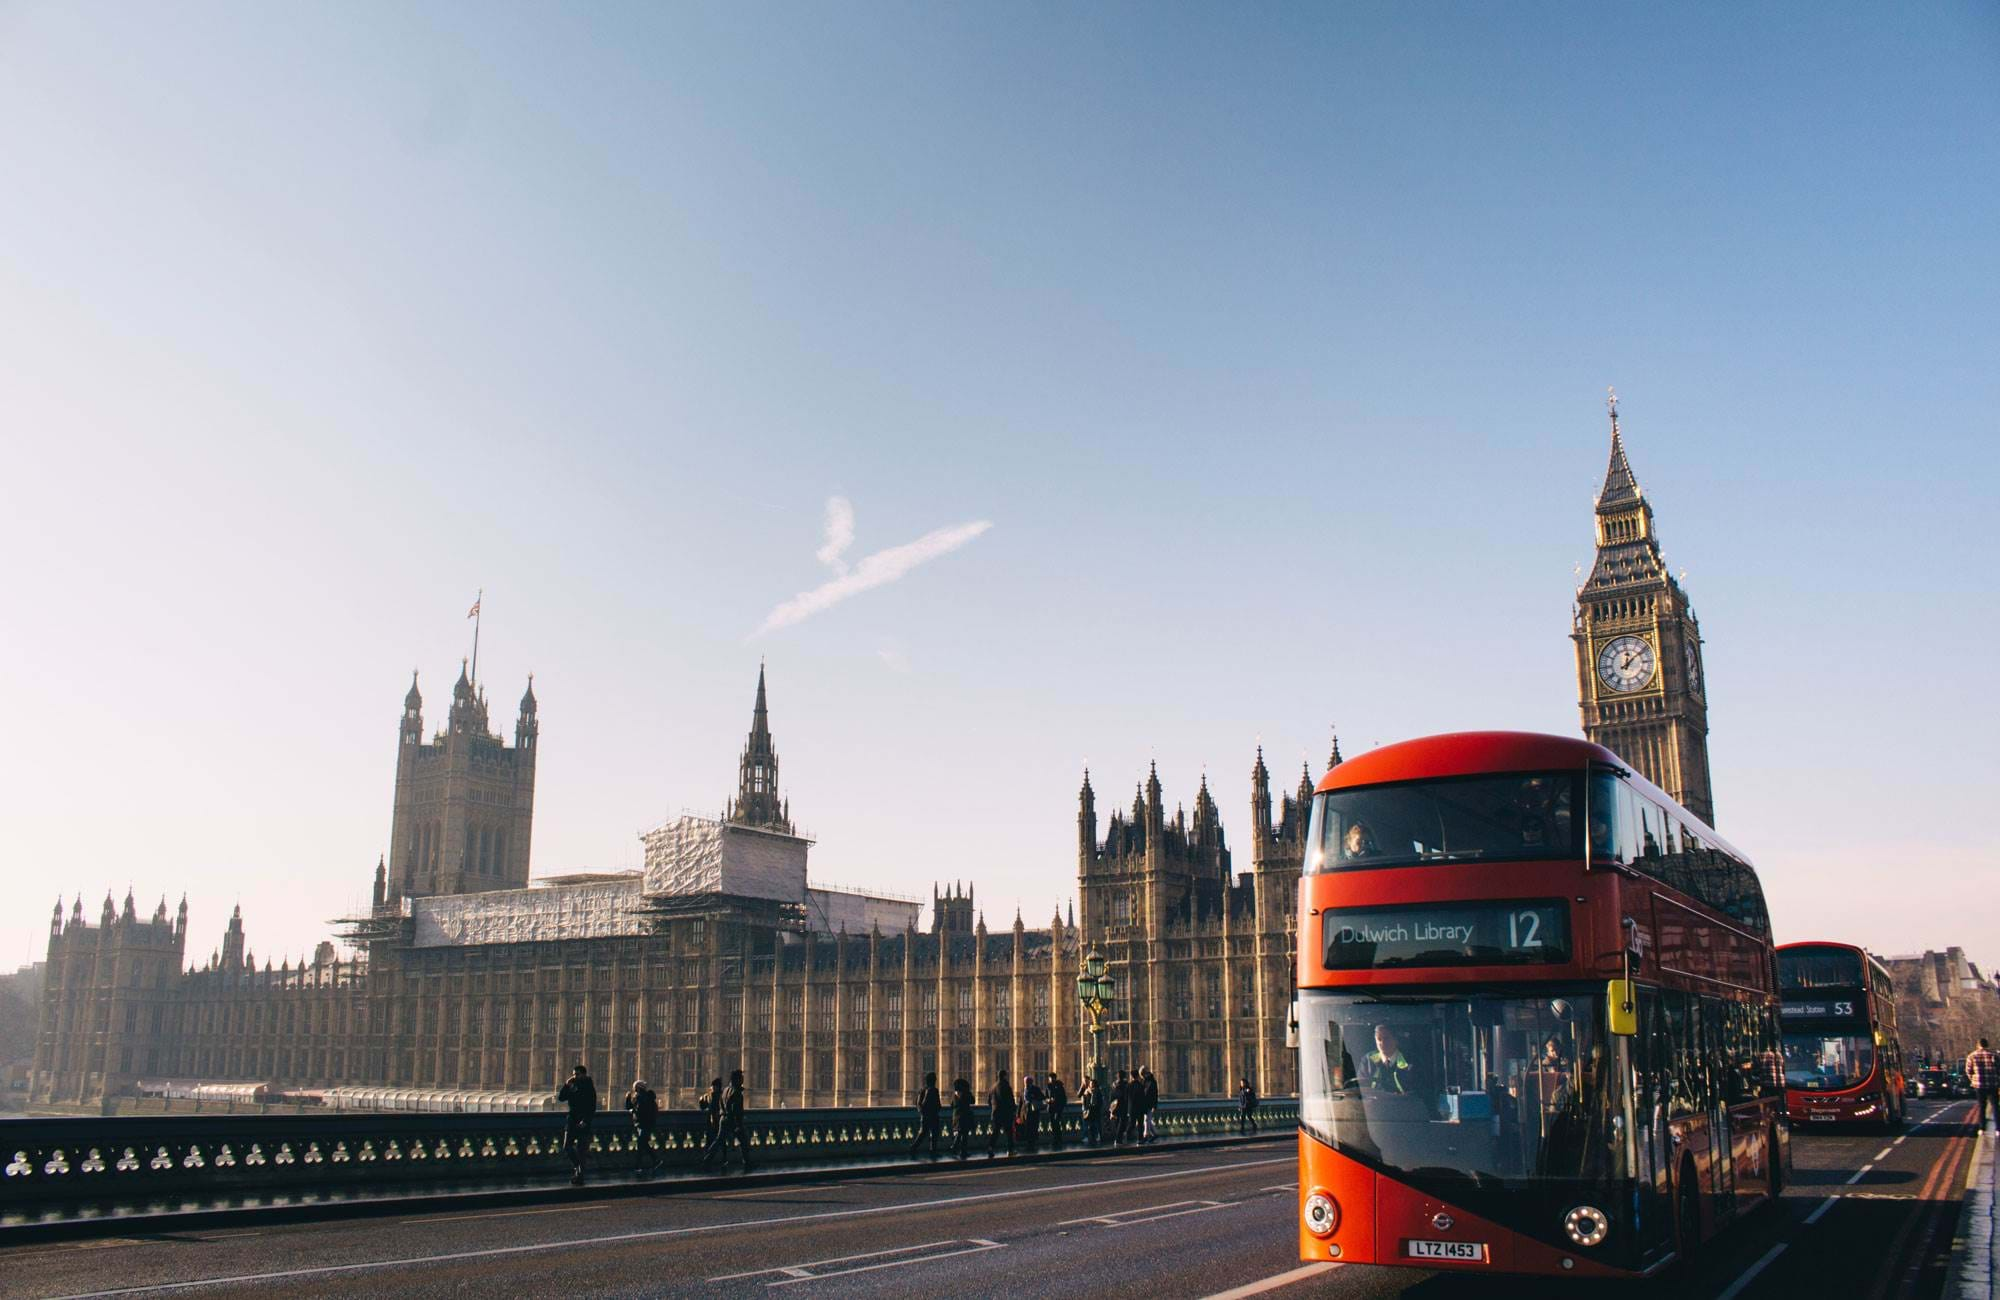 doubledecker bus in london driving past big ben on a sunny day